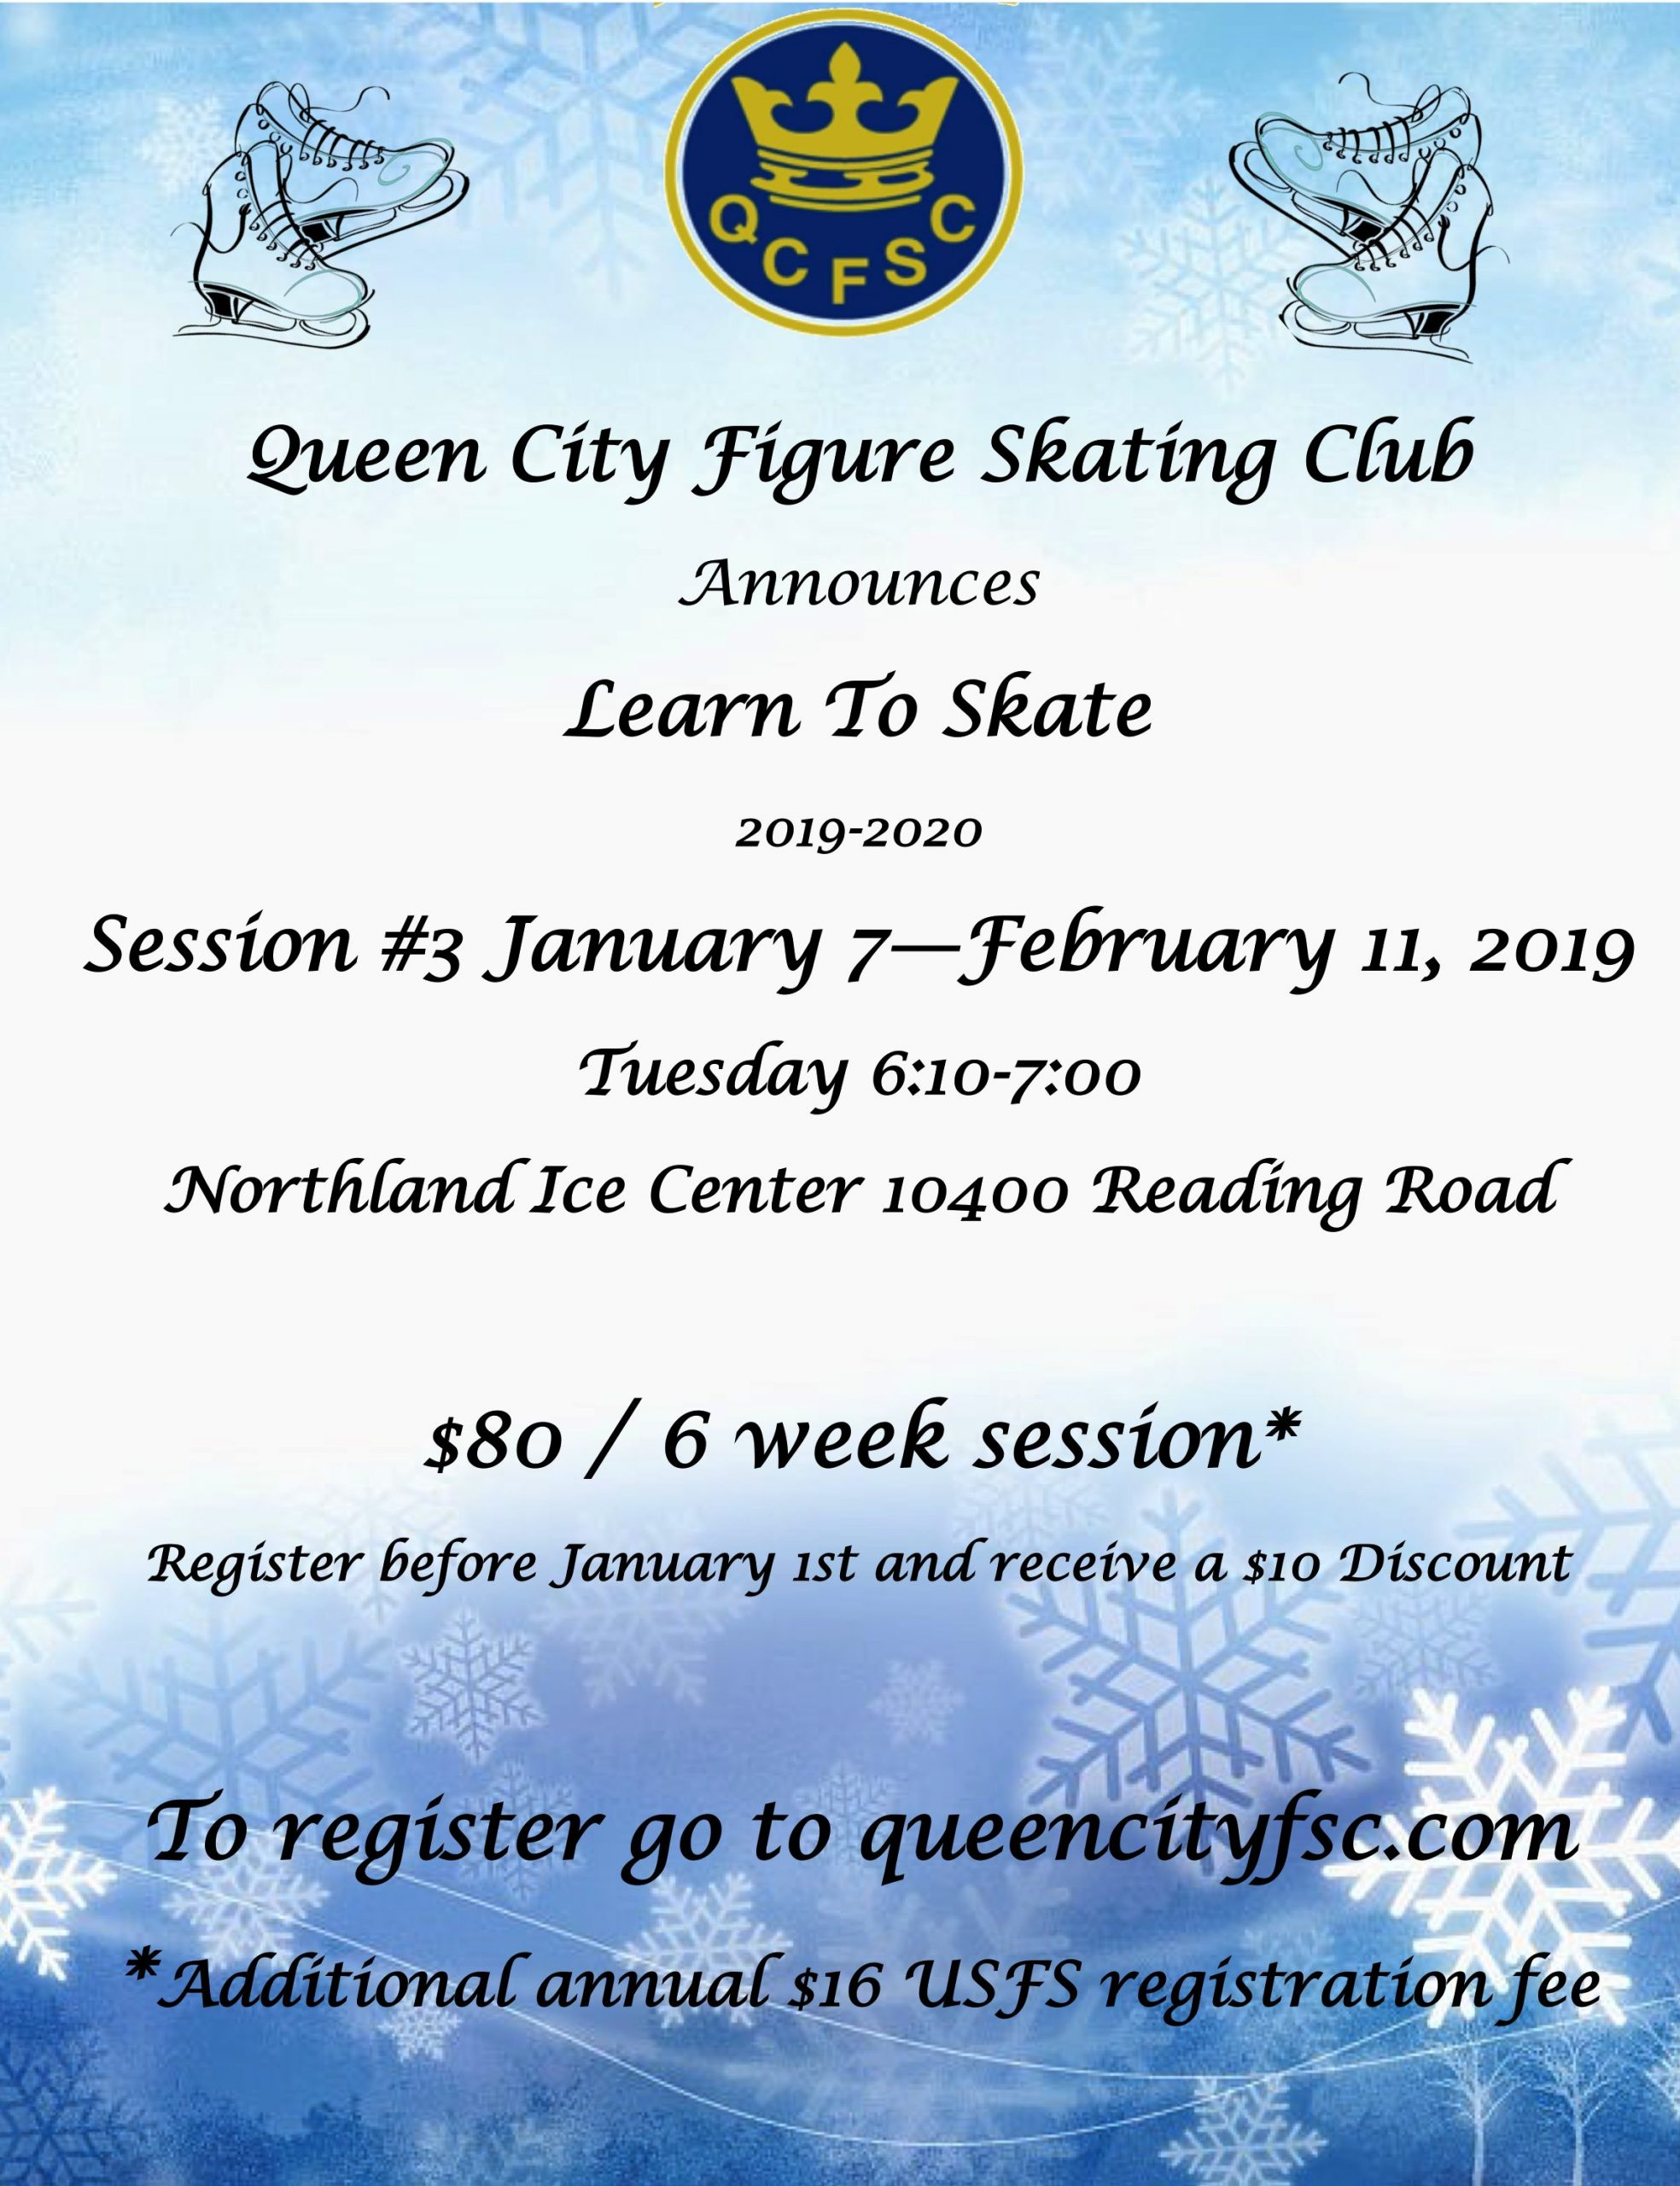 Learn to Skate 2019-20 Session 3